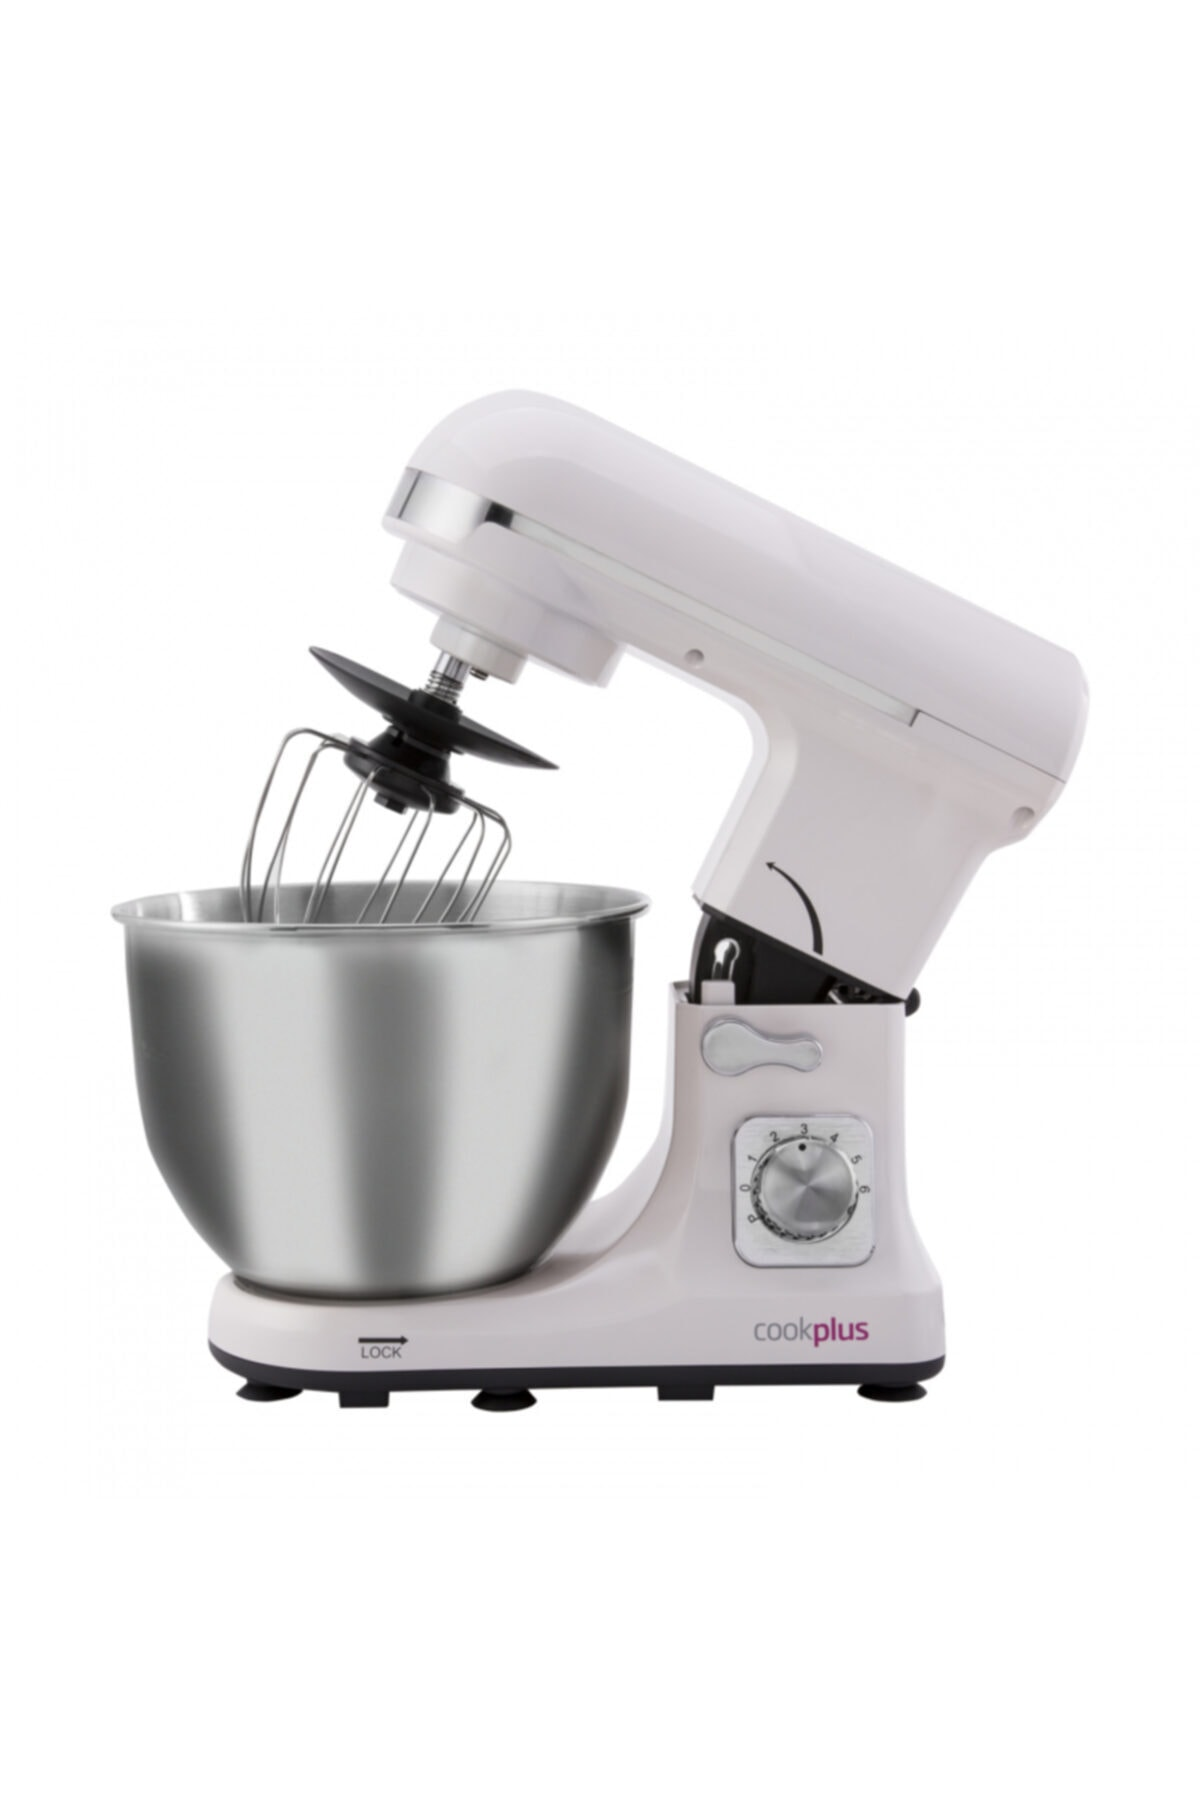 Cookplus Quick Chef 1001 Mutfak Robotu Cream 2